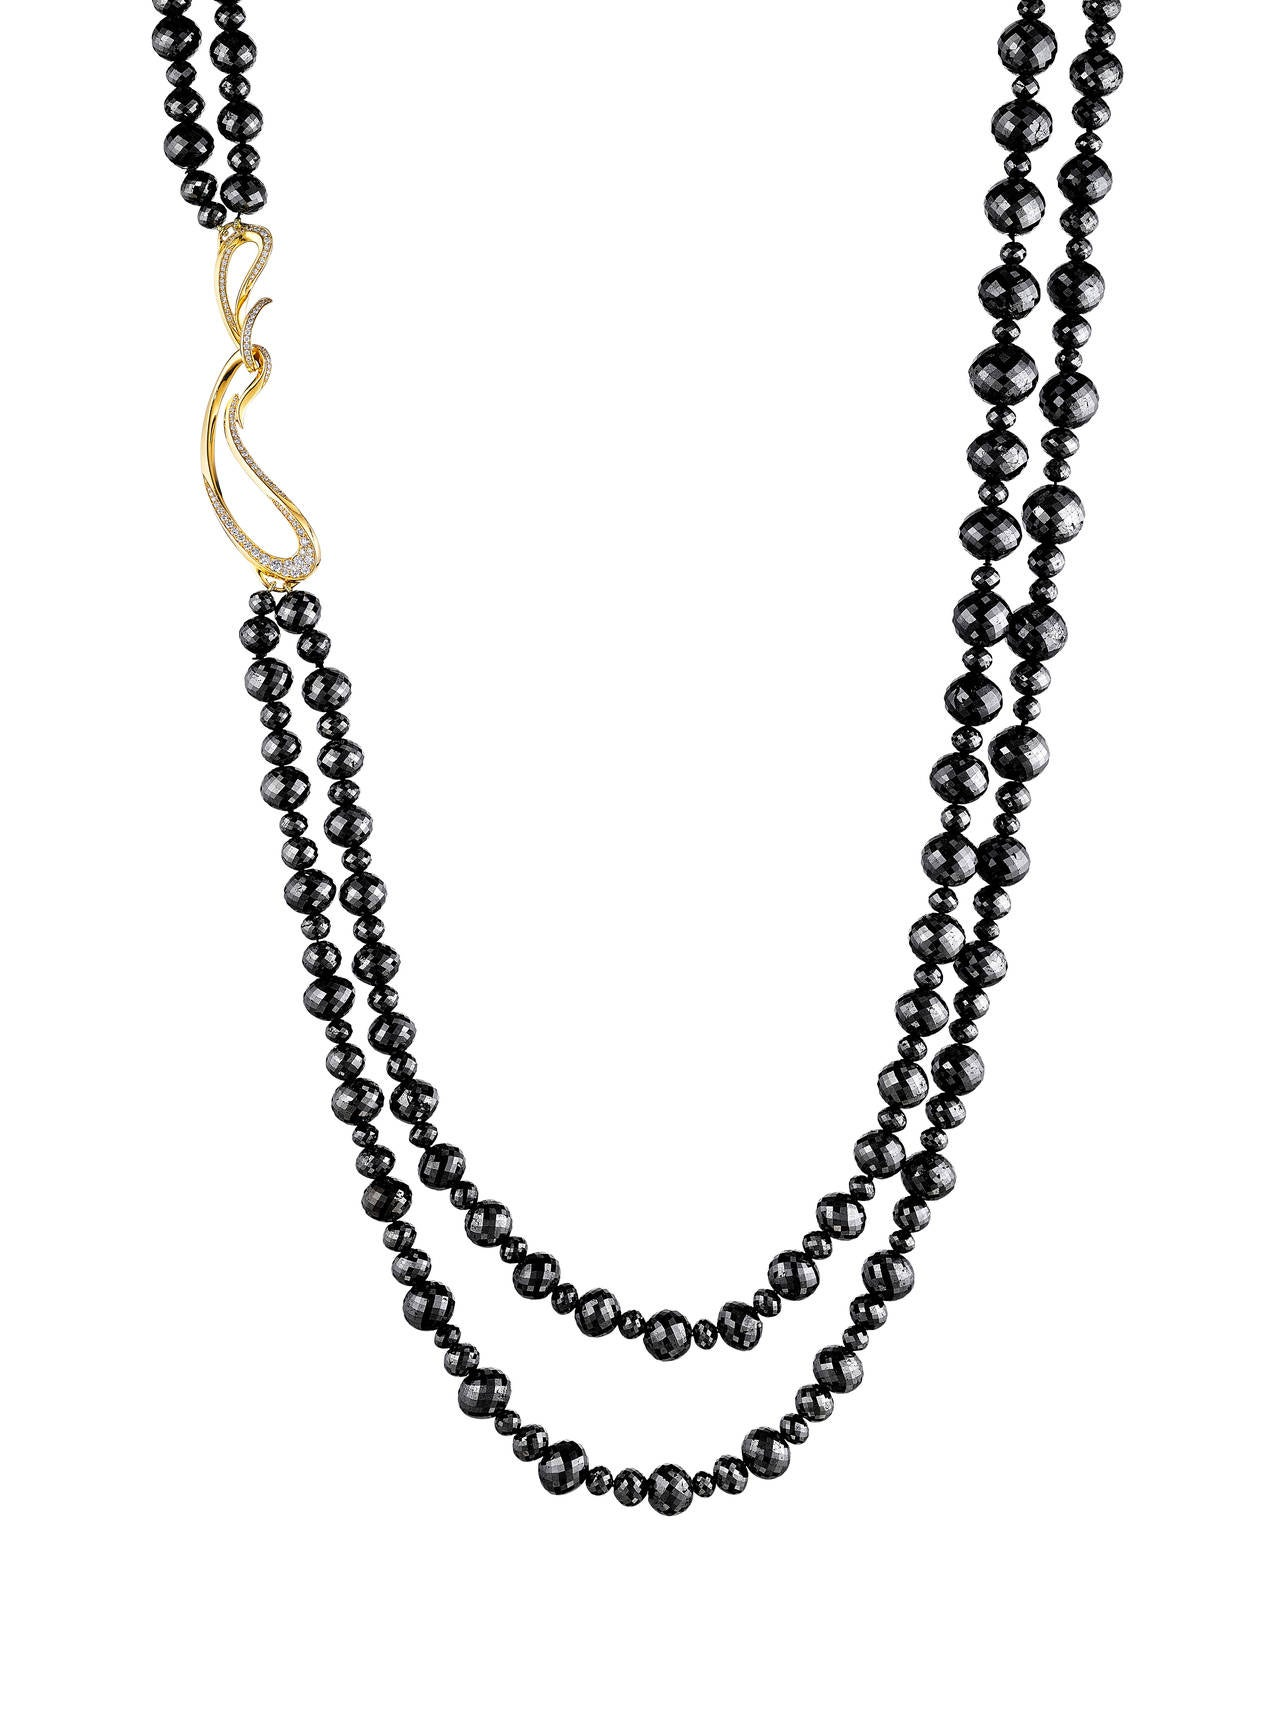 This spectacular double-strand necklace has approximately 770 ct of scintillating 4-11 mm black diamond beads. It is finished with Naomi Sarna's signature 18K yellow gold clasp set with beautiful VS-F-G white diamonds. This necklace can be doubled